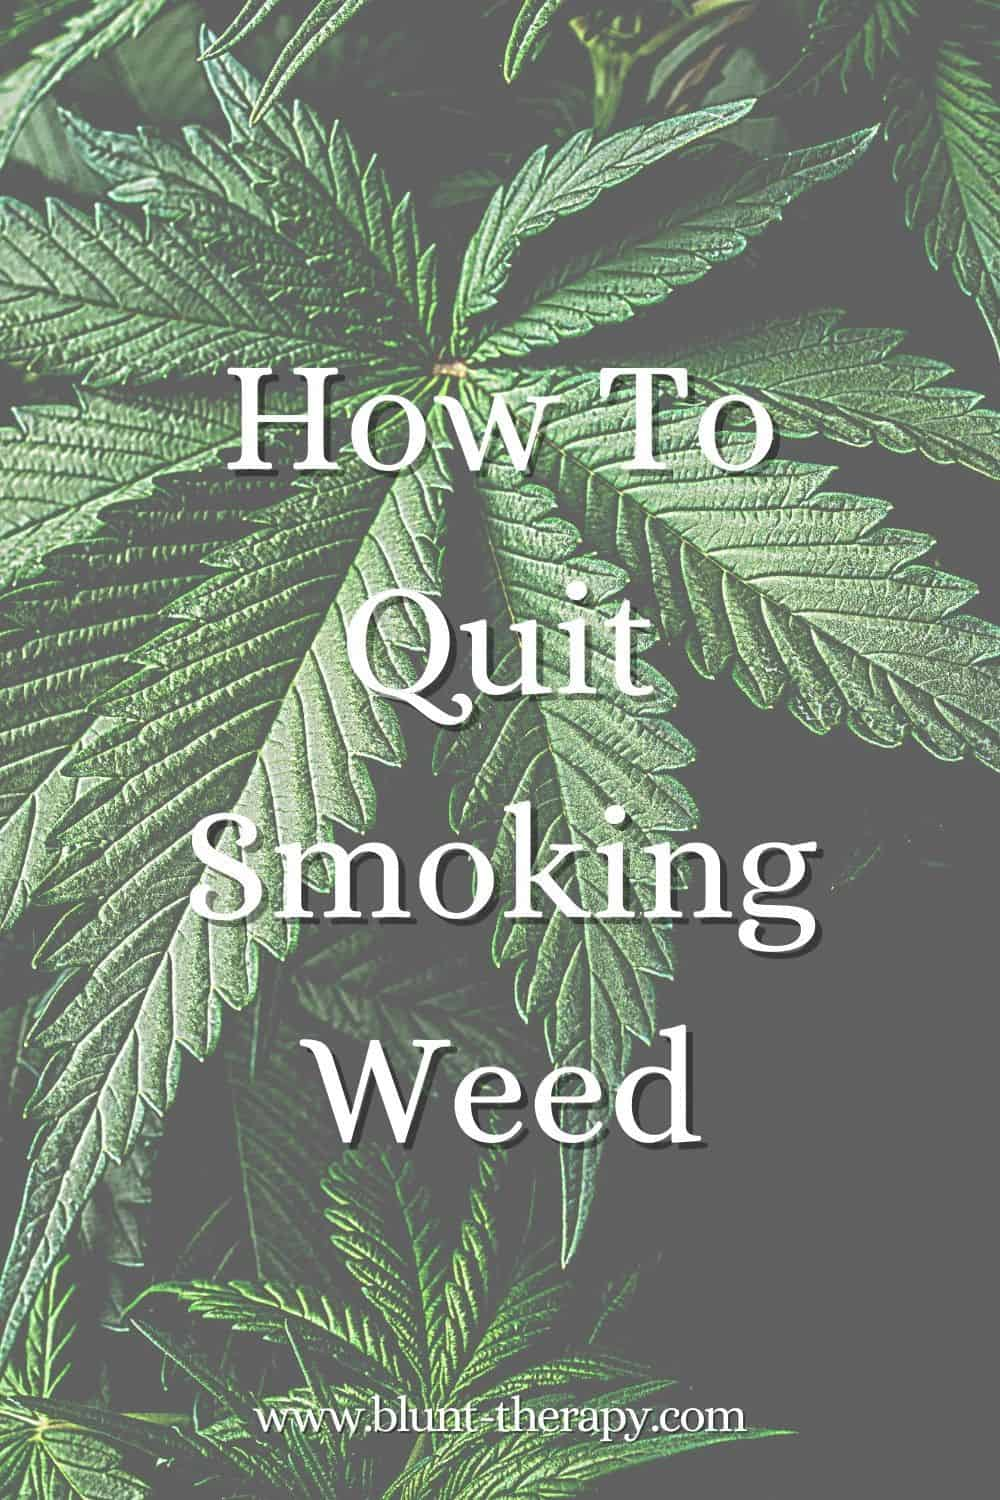 How To Quit Smoking Weed: 7 Ways To Kick The Habit